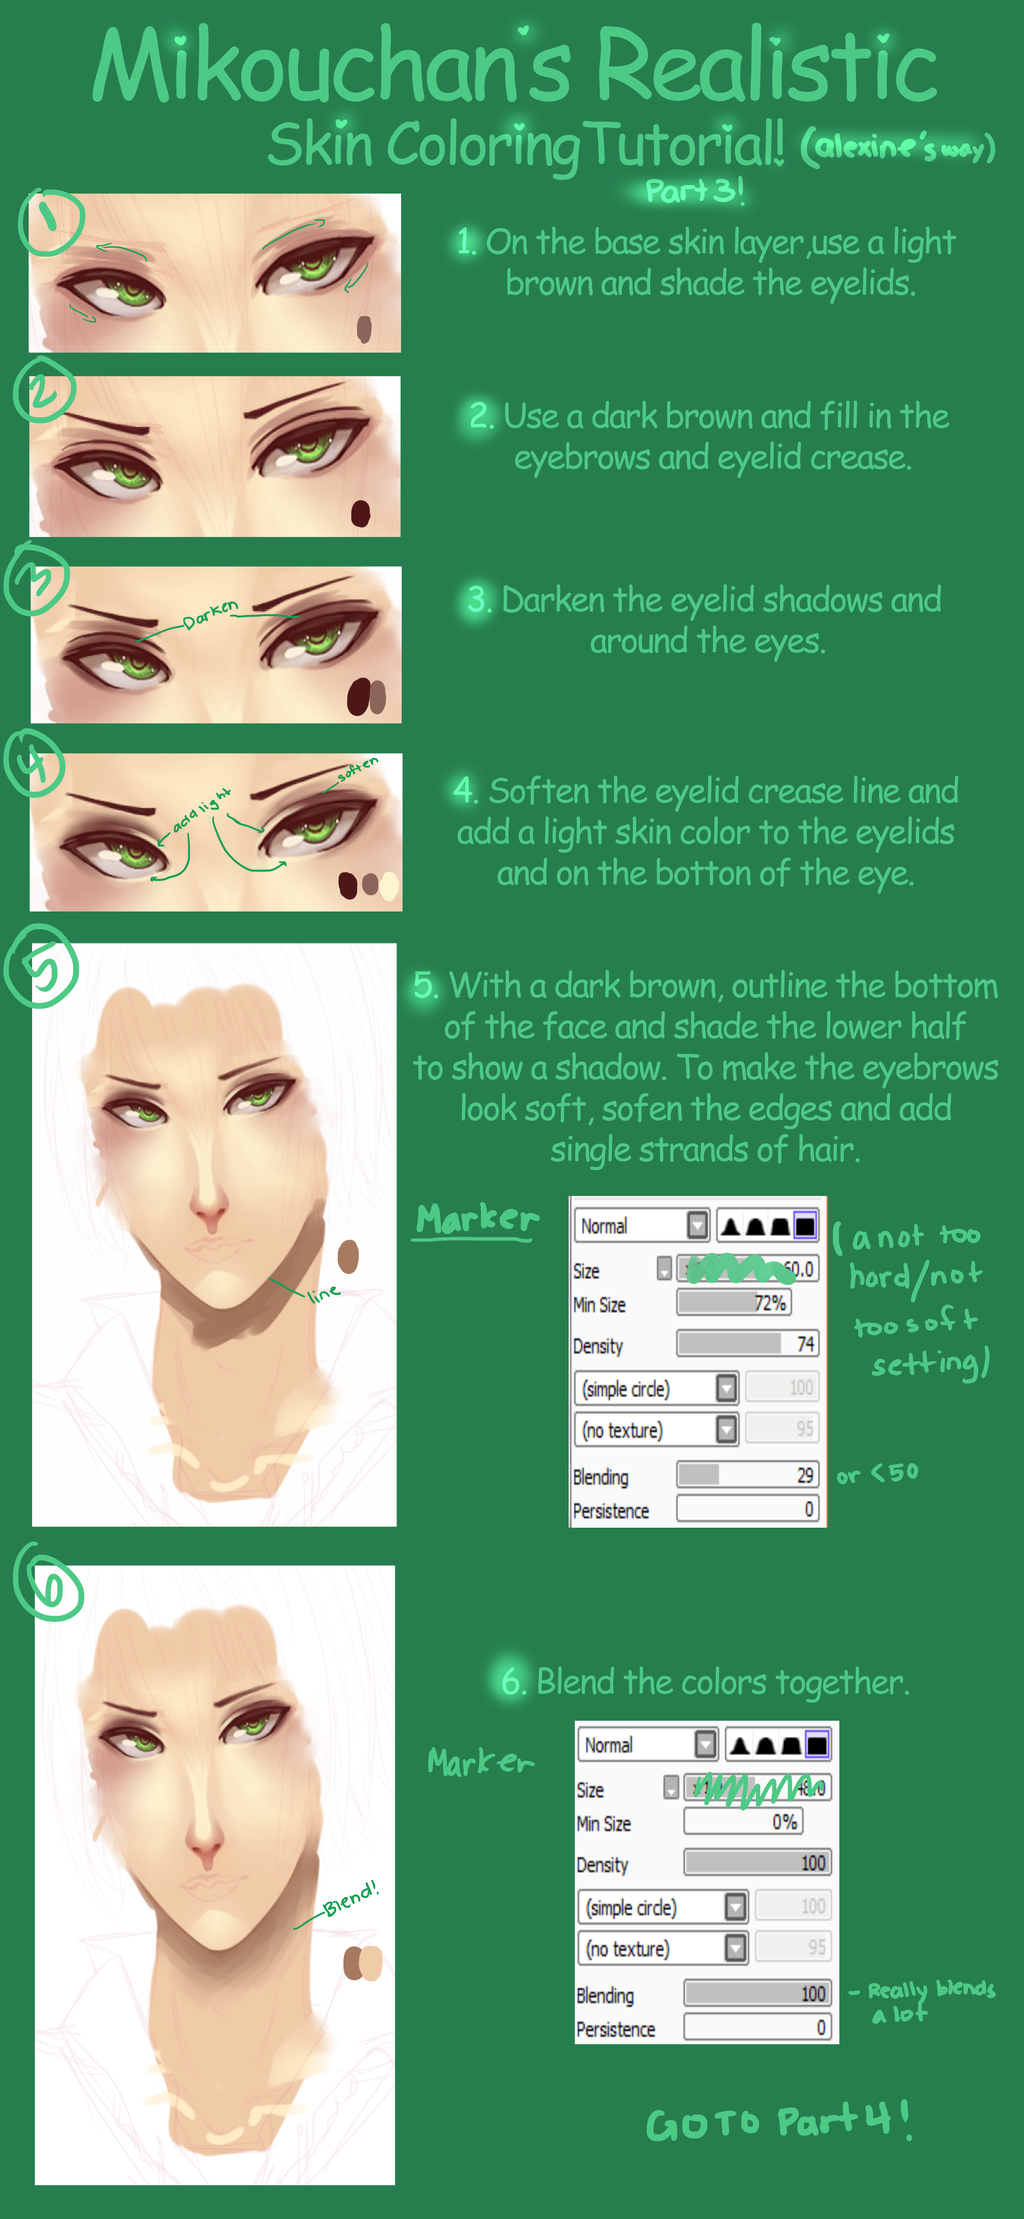 SAI Semi-Realistic Skin Coloring Tutorial Part 3 by Mikouchan ...